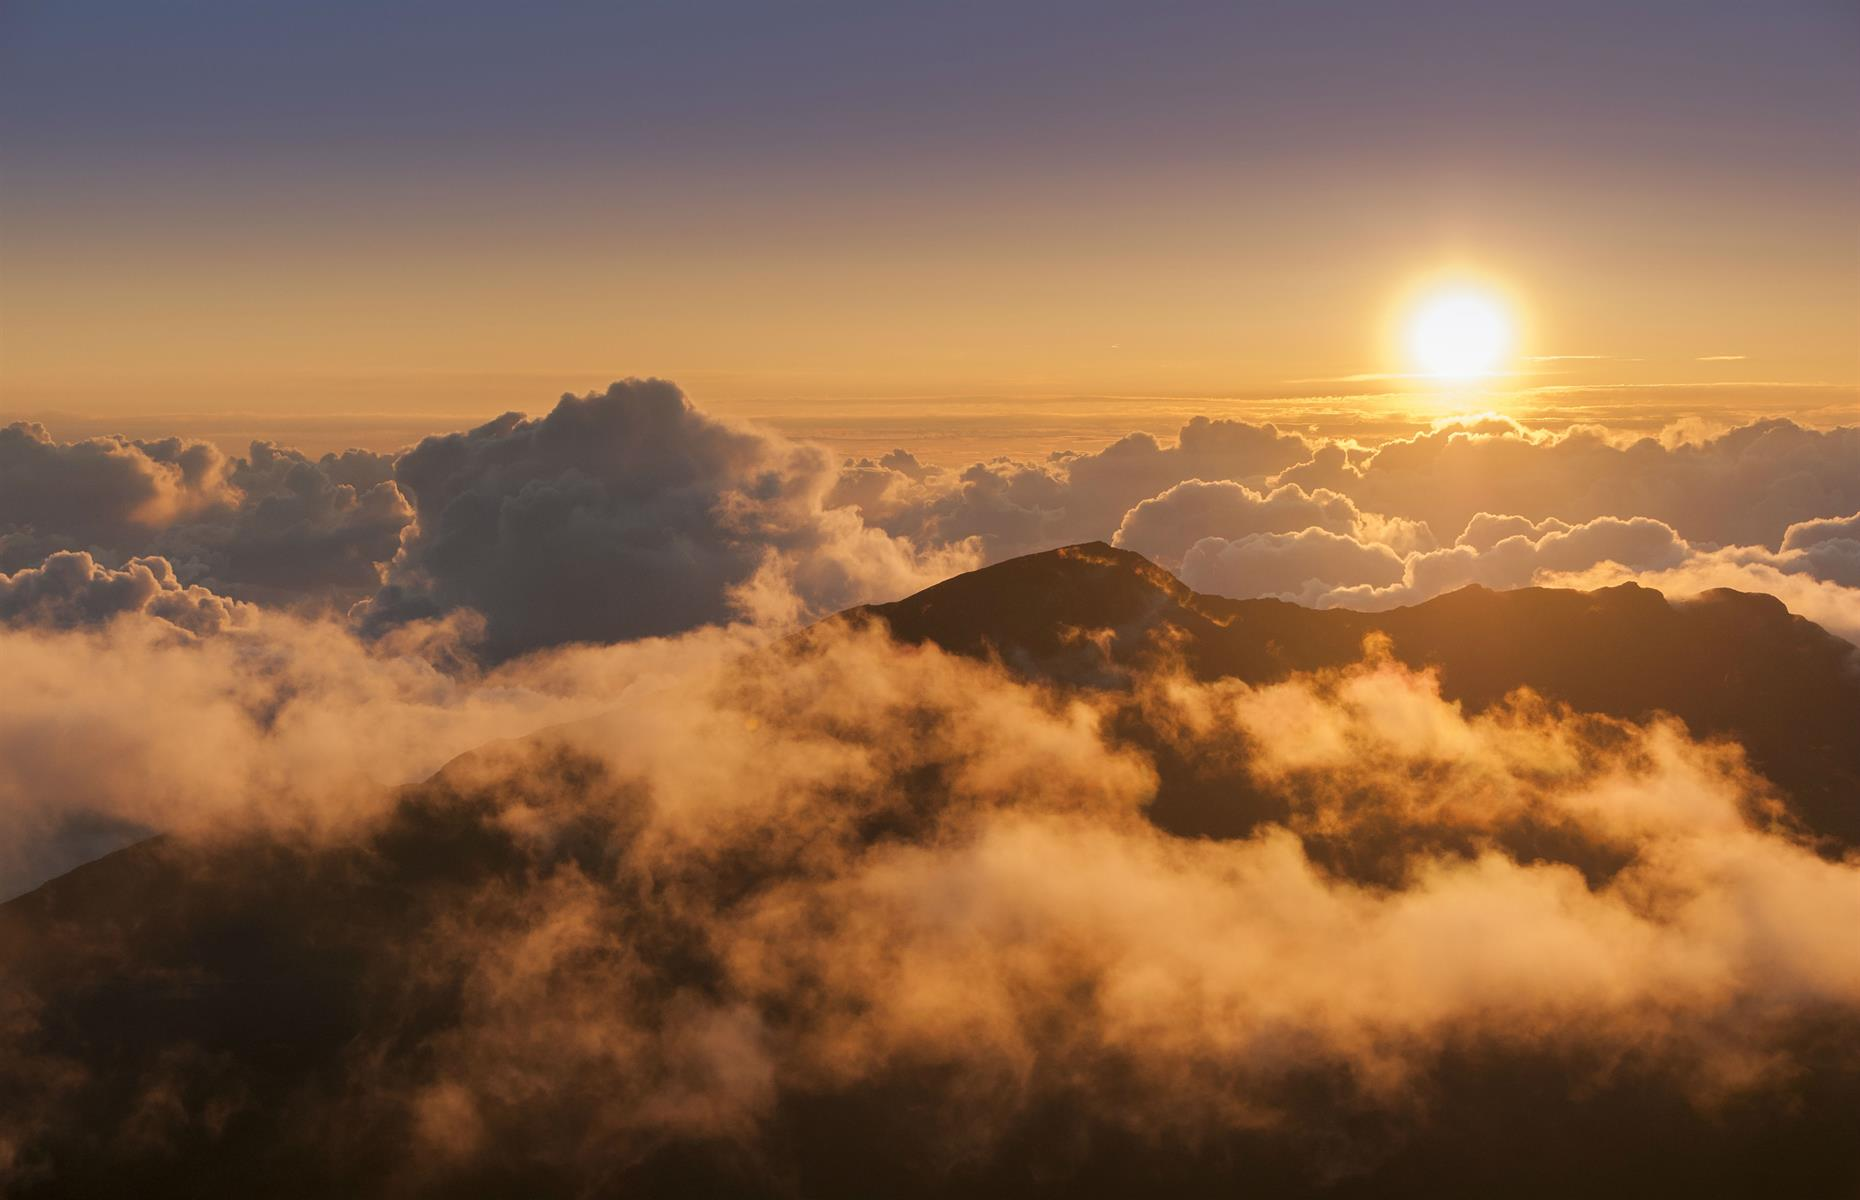 Slide 25 of 29: For perhaps the most beautiful sunrise in Hawaii, leave no later than 3.30am from Kahului to get to the peak of the wide volcano of Haleakala. You can drive up the Haleakala Highway and once you're there, 10,000 feet (3,055m) above sea level, it's just a matter of waiting for the world to turn different shades of red, giving way to an incredible volcanic landscape. Make a reservation to park your car seven days in advanceand bring plenty of warm clothing to fend off the early morning chill. The park is operating on a phased reopening basis so check the website before traveling too.